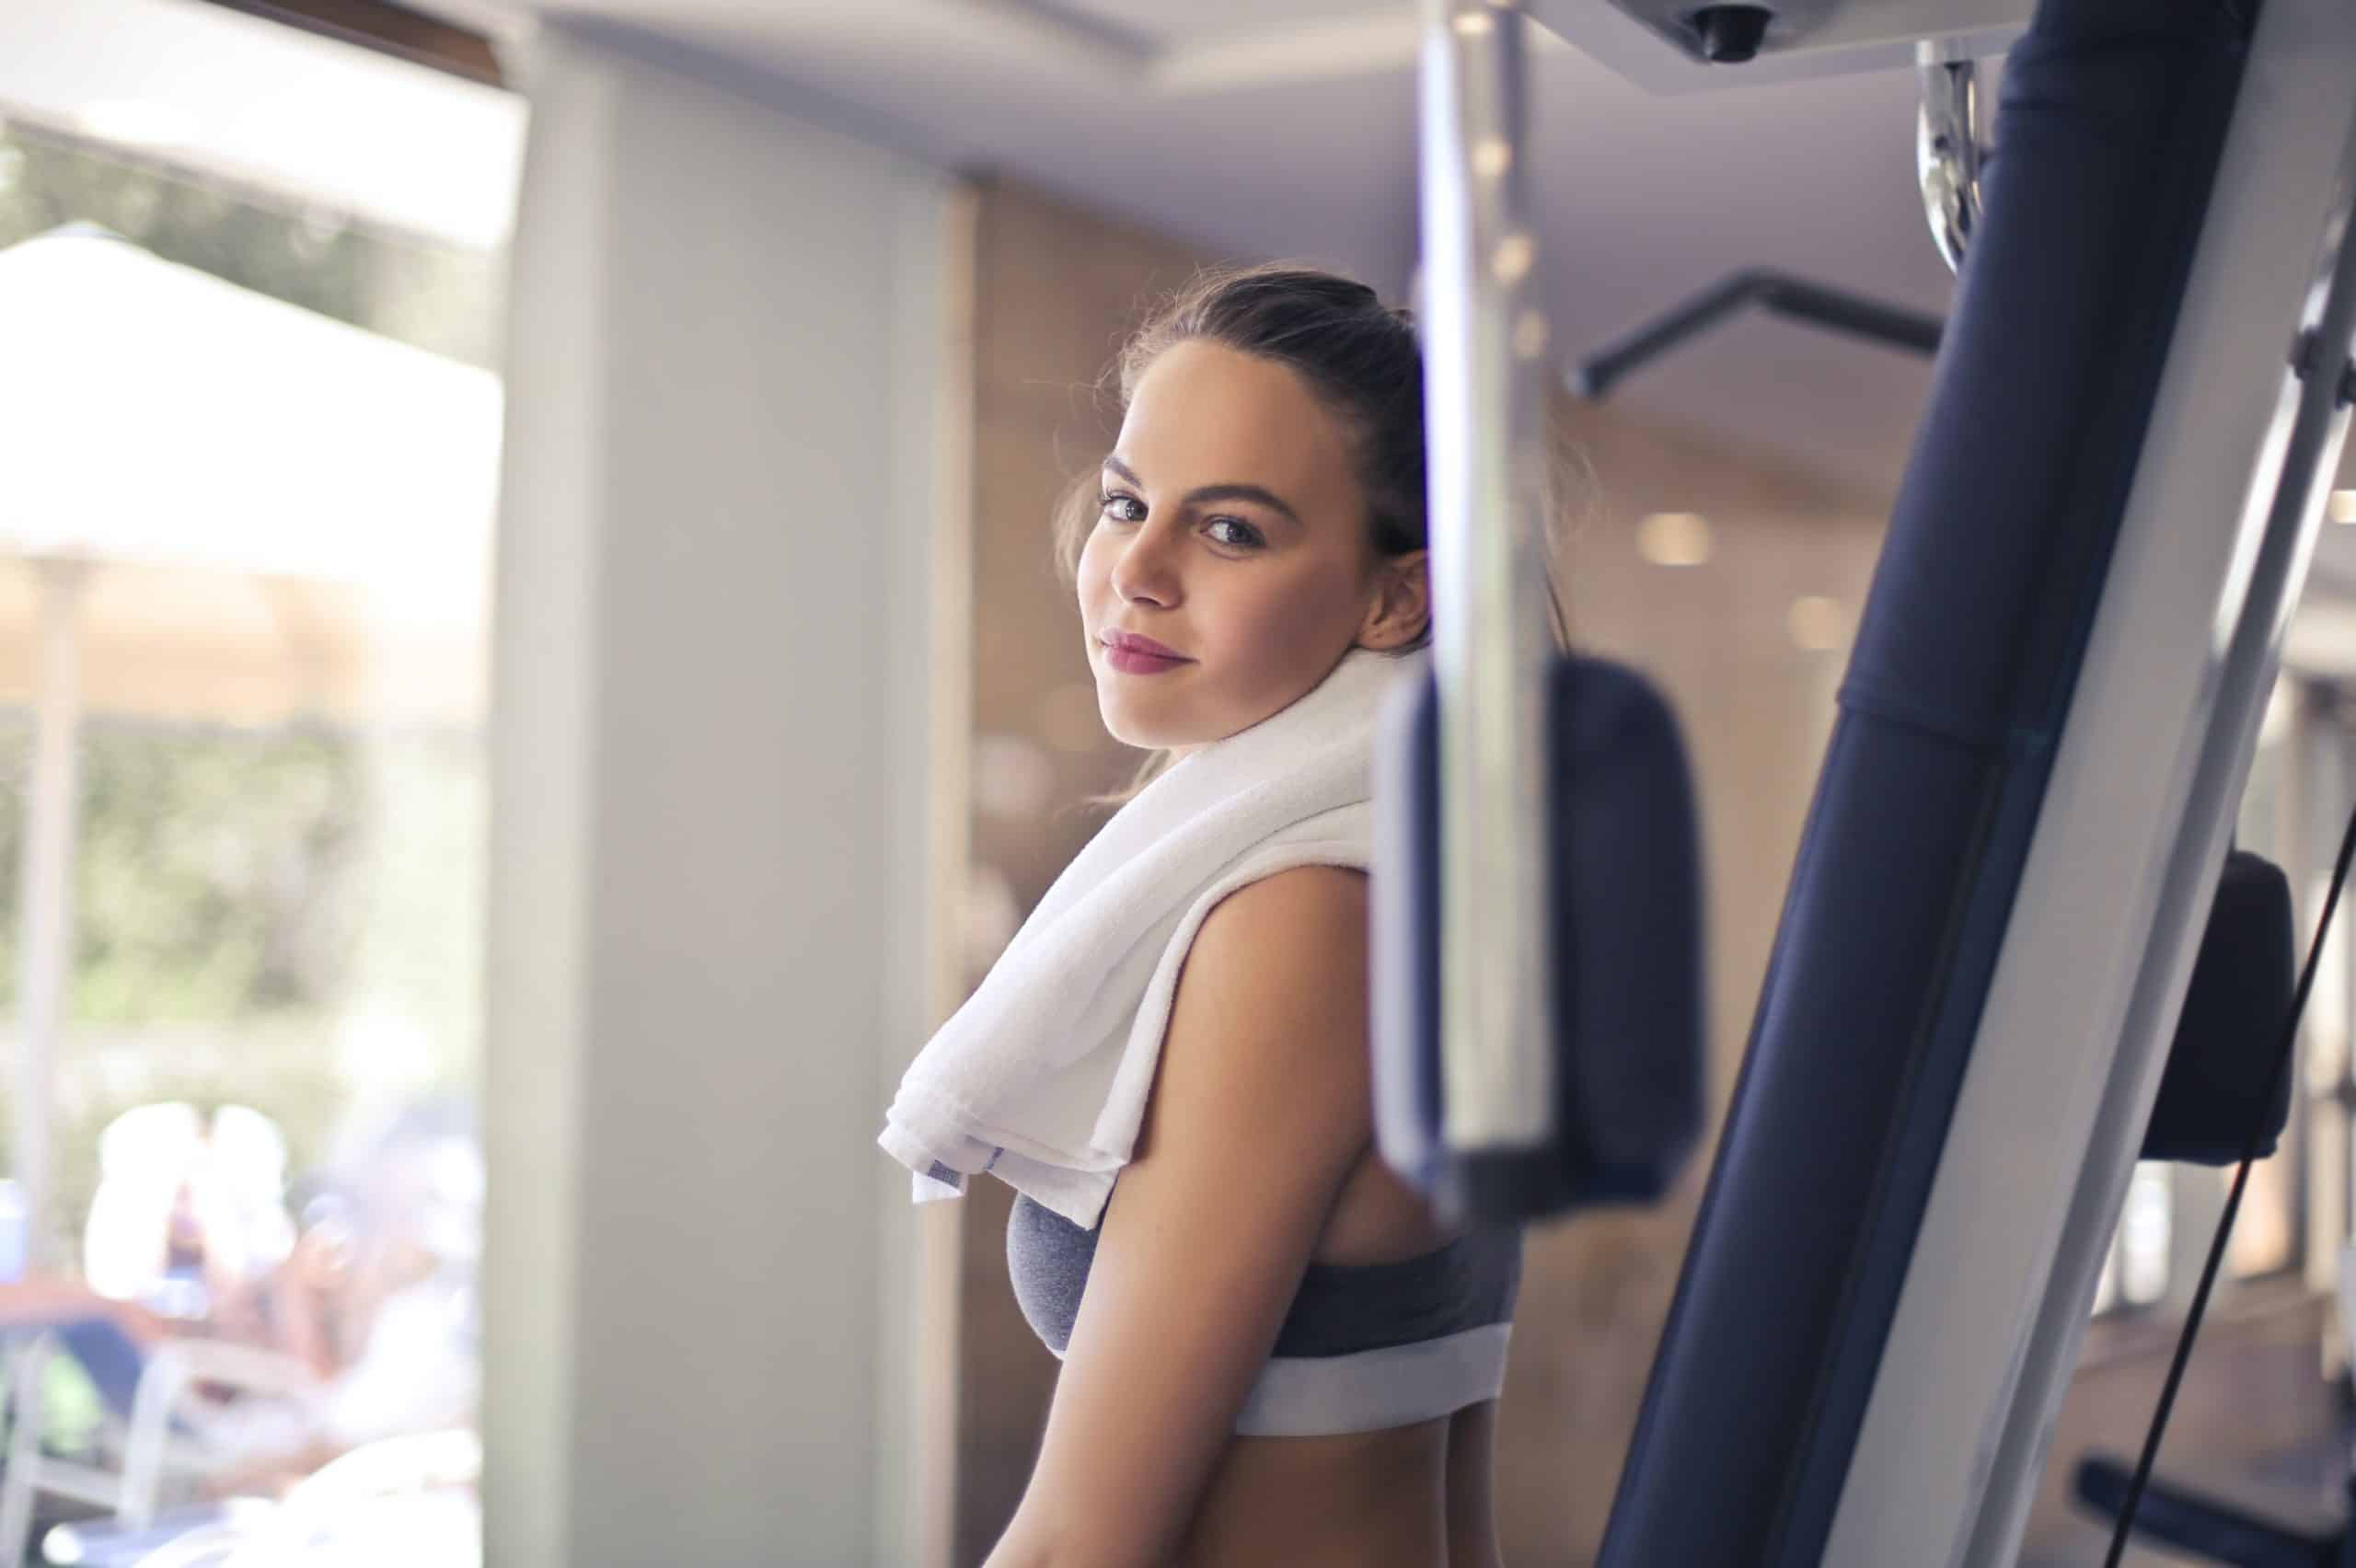 What You Should Know About Gym Towels